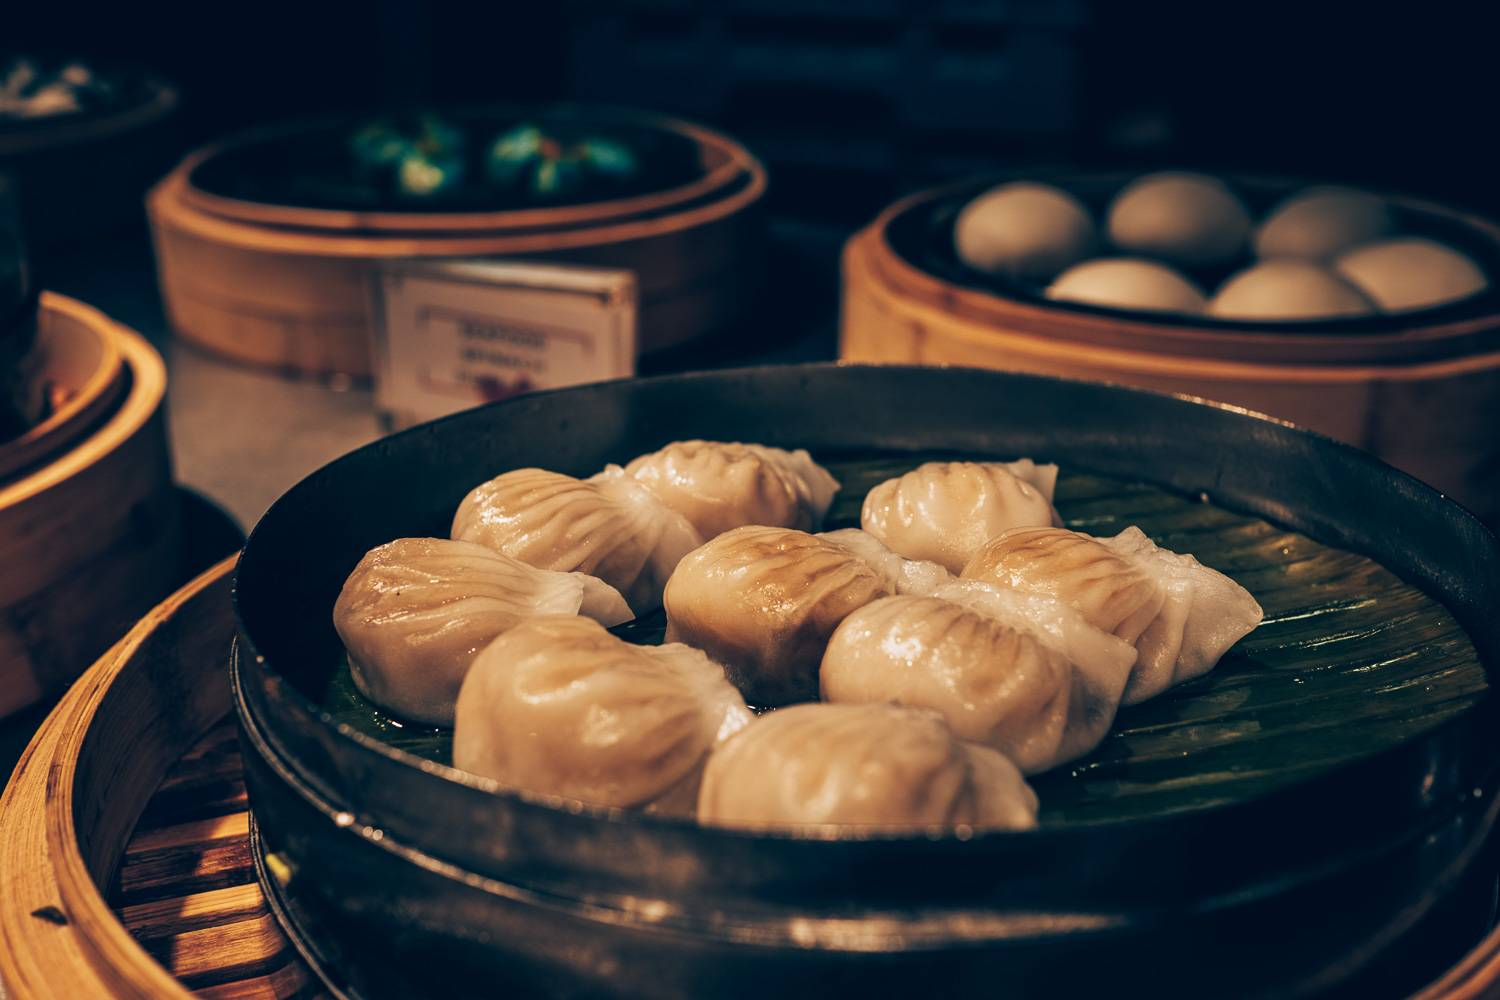 Image of dumplings and Chinese dim sum in steamer boxes